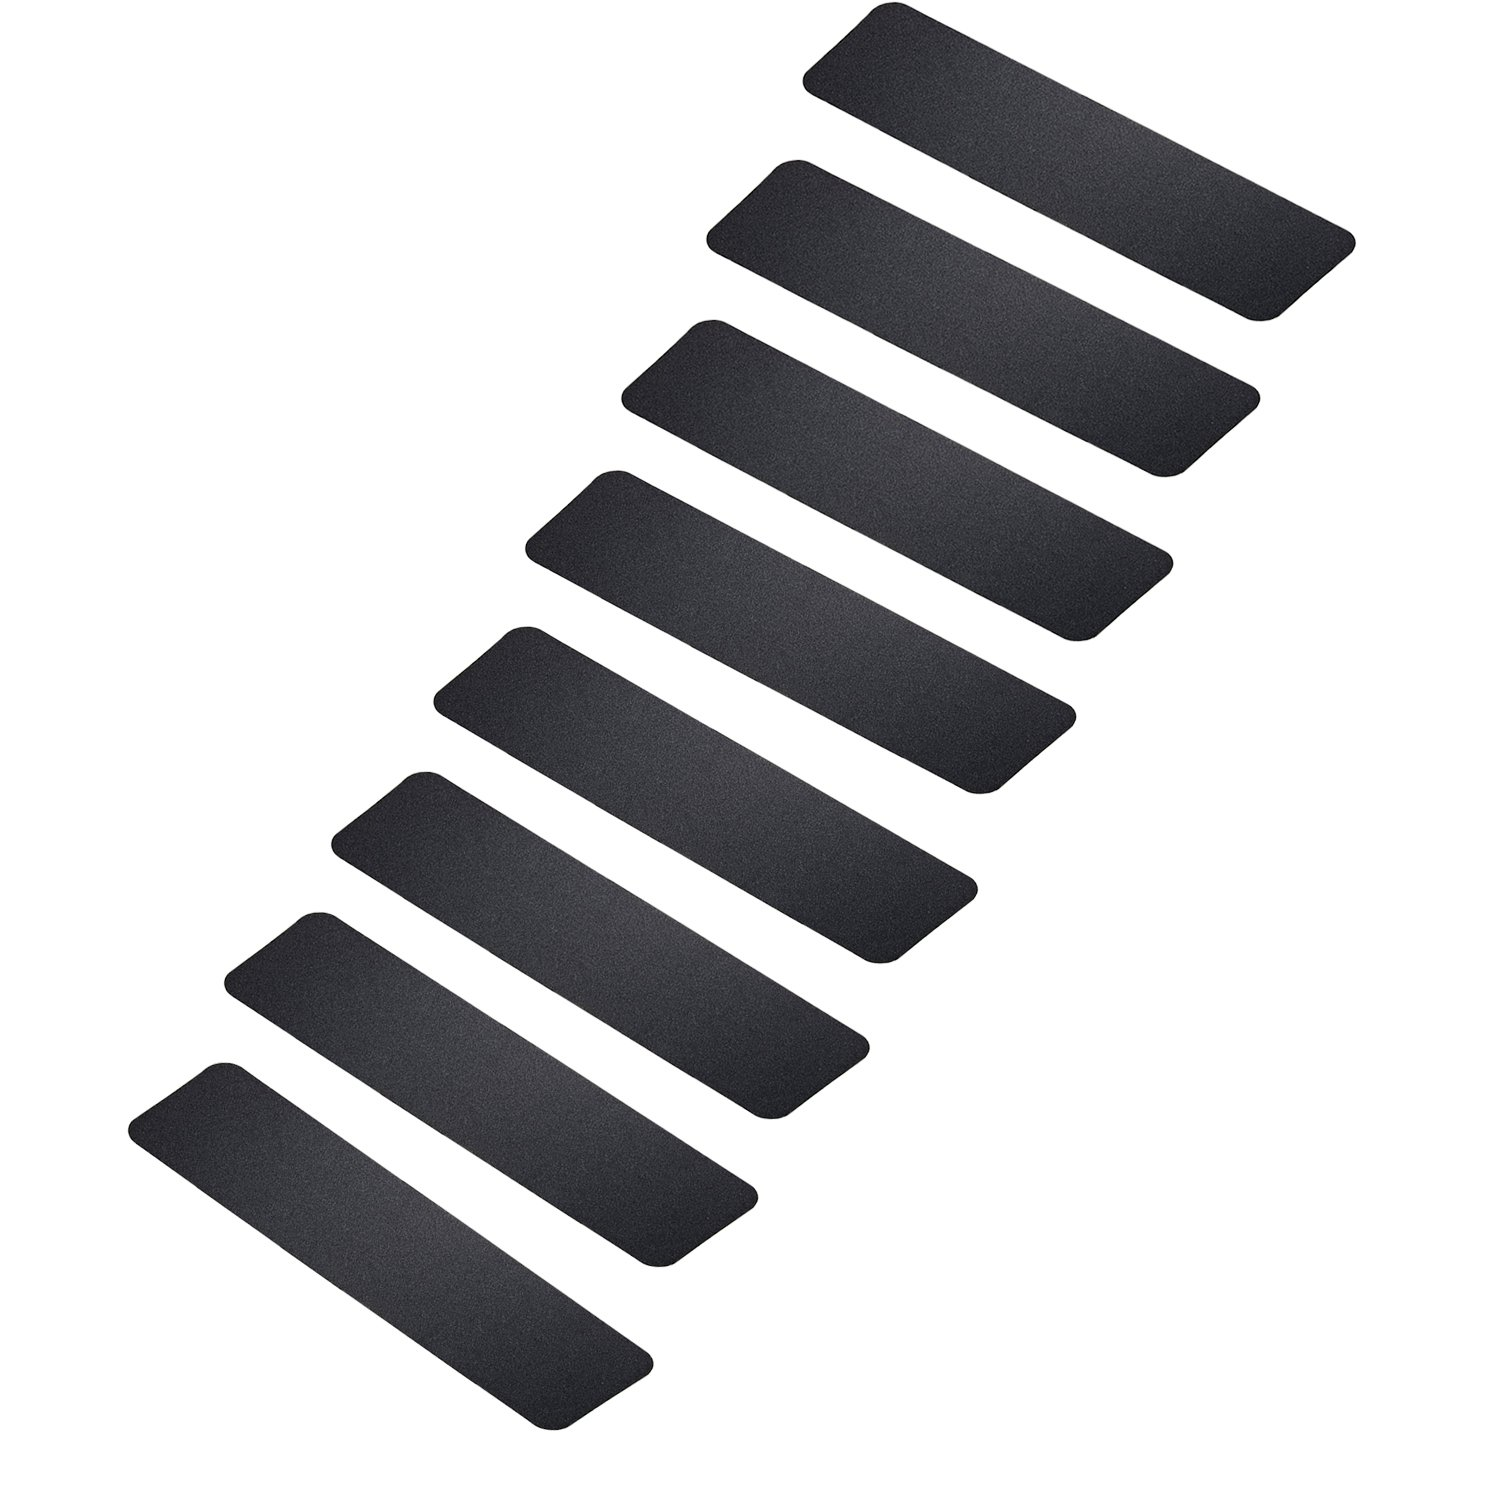 MBIGM Pack of 8 Non-Slip Safety Step Tapes Wood Stair Treads Floor Track Sticker 80 Grit for Skateboard & Outdoor & Staircase, Black (6''x24'', Black)